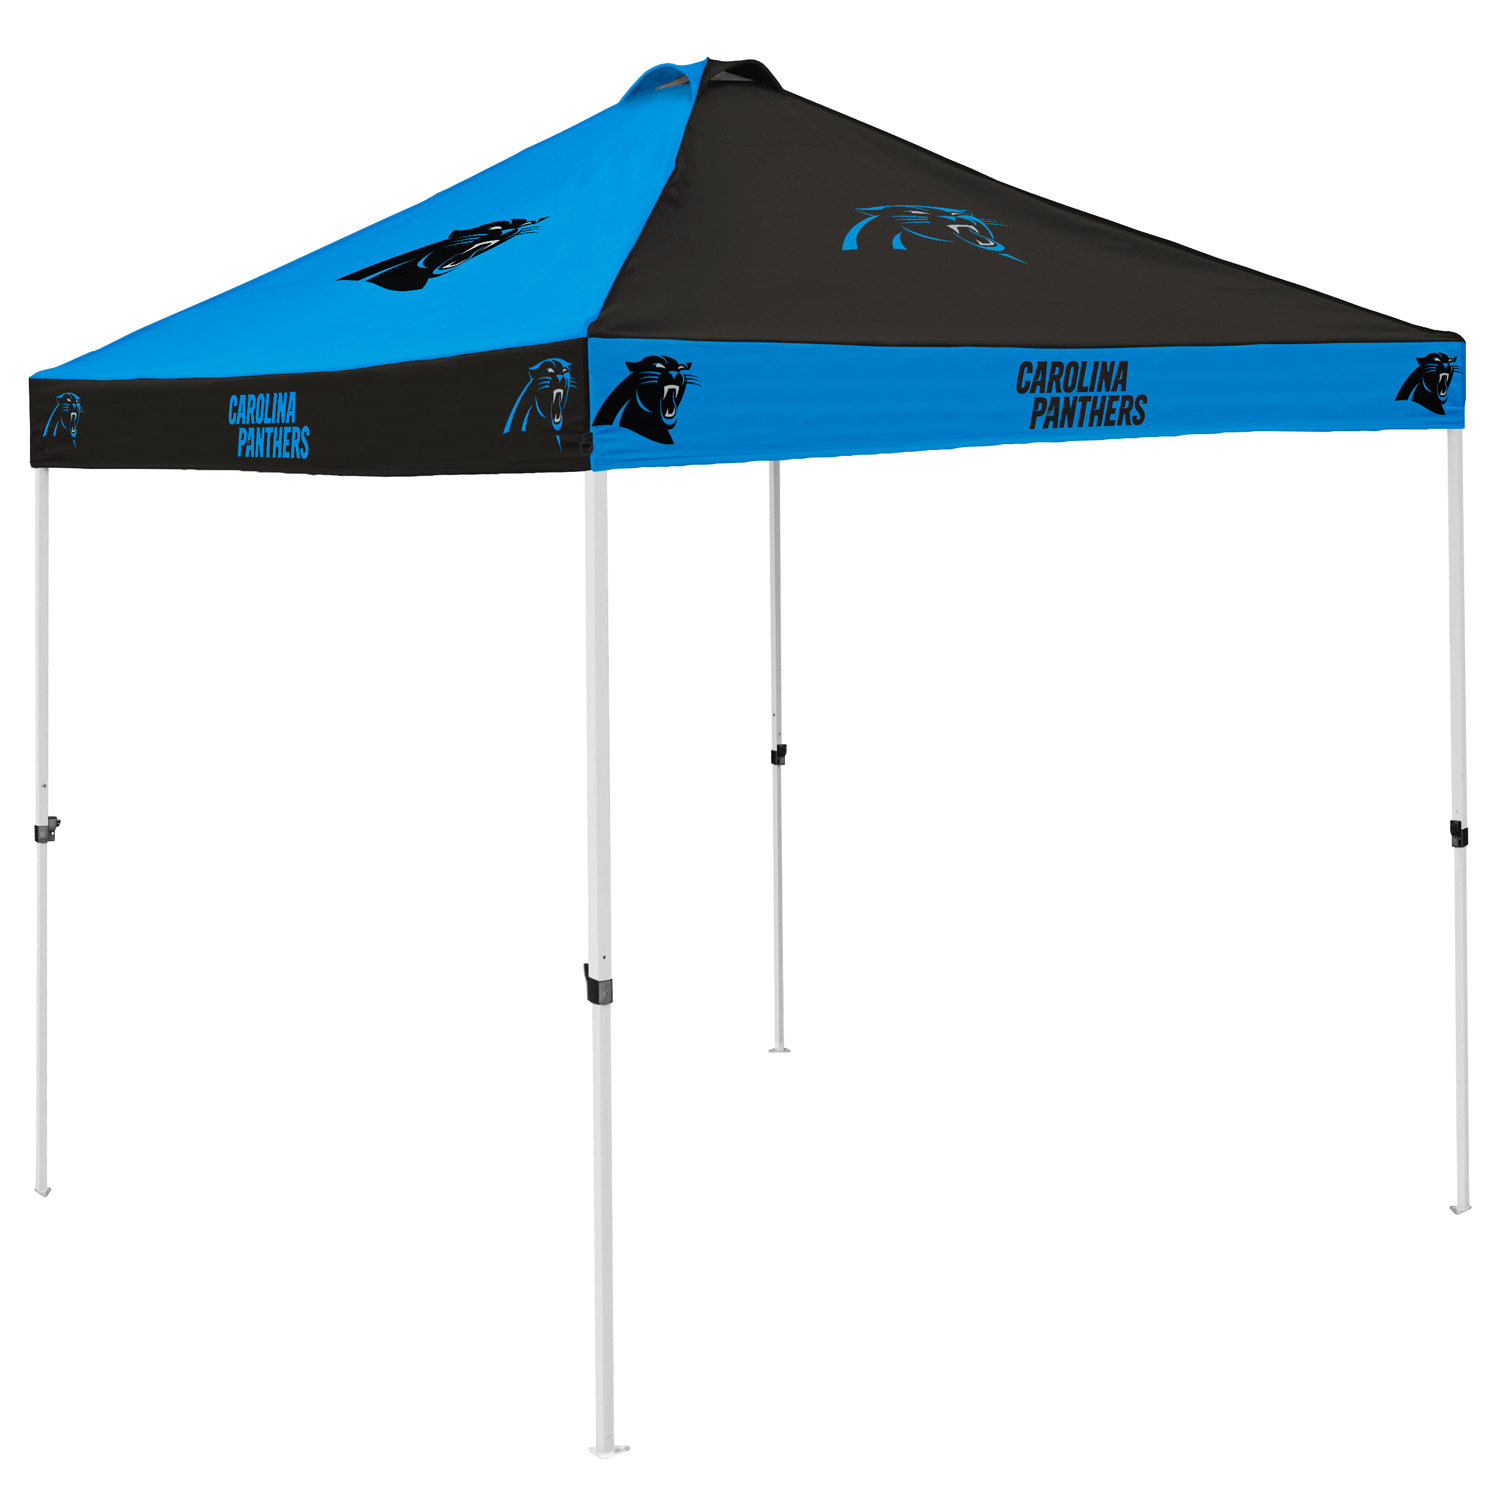 Carolina Tent w/ Panthers Logo - 9 x 9 Checkerboard Canopy  sc 1 st  Team Sports Covers & Tent w/ Panthers Logo - 9 x 9 Checkerboard Canopy